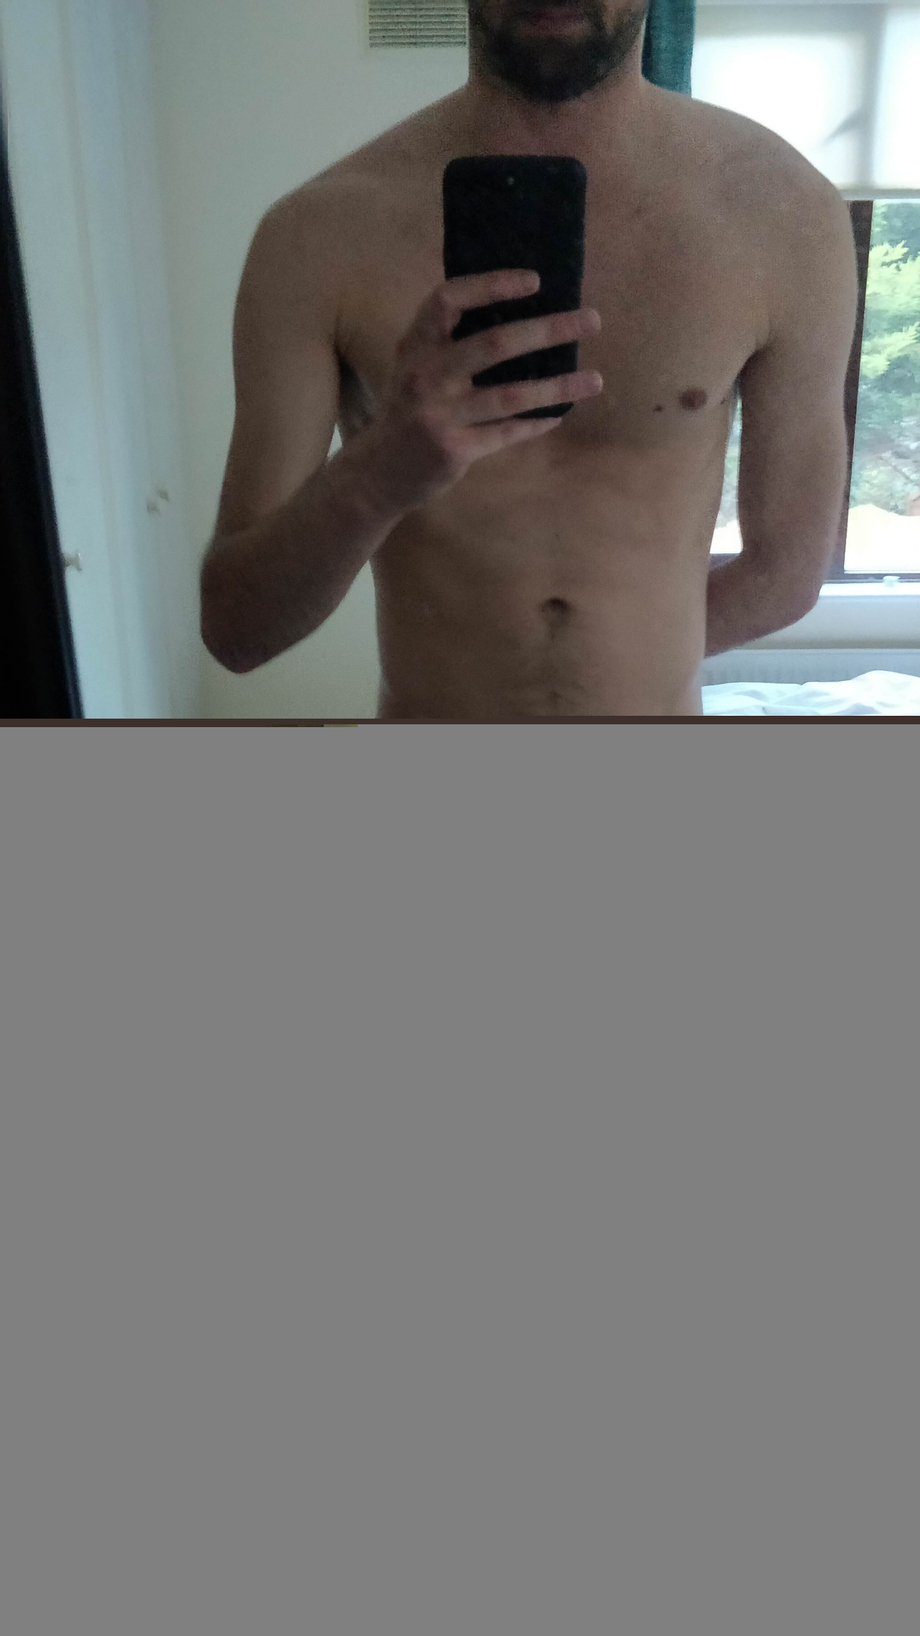 Not much left to the imagination in these [even less so in comments]   Bulges  Porn XXX   Hot XXX Gays